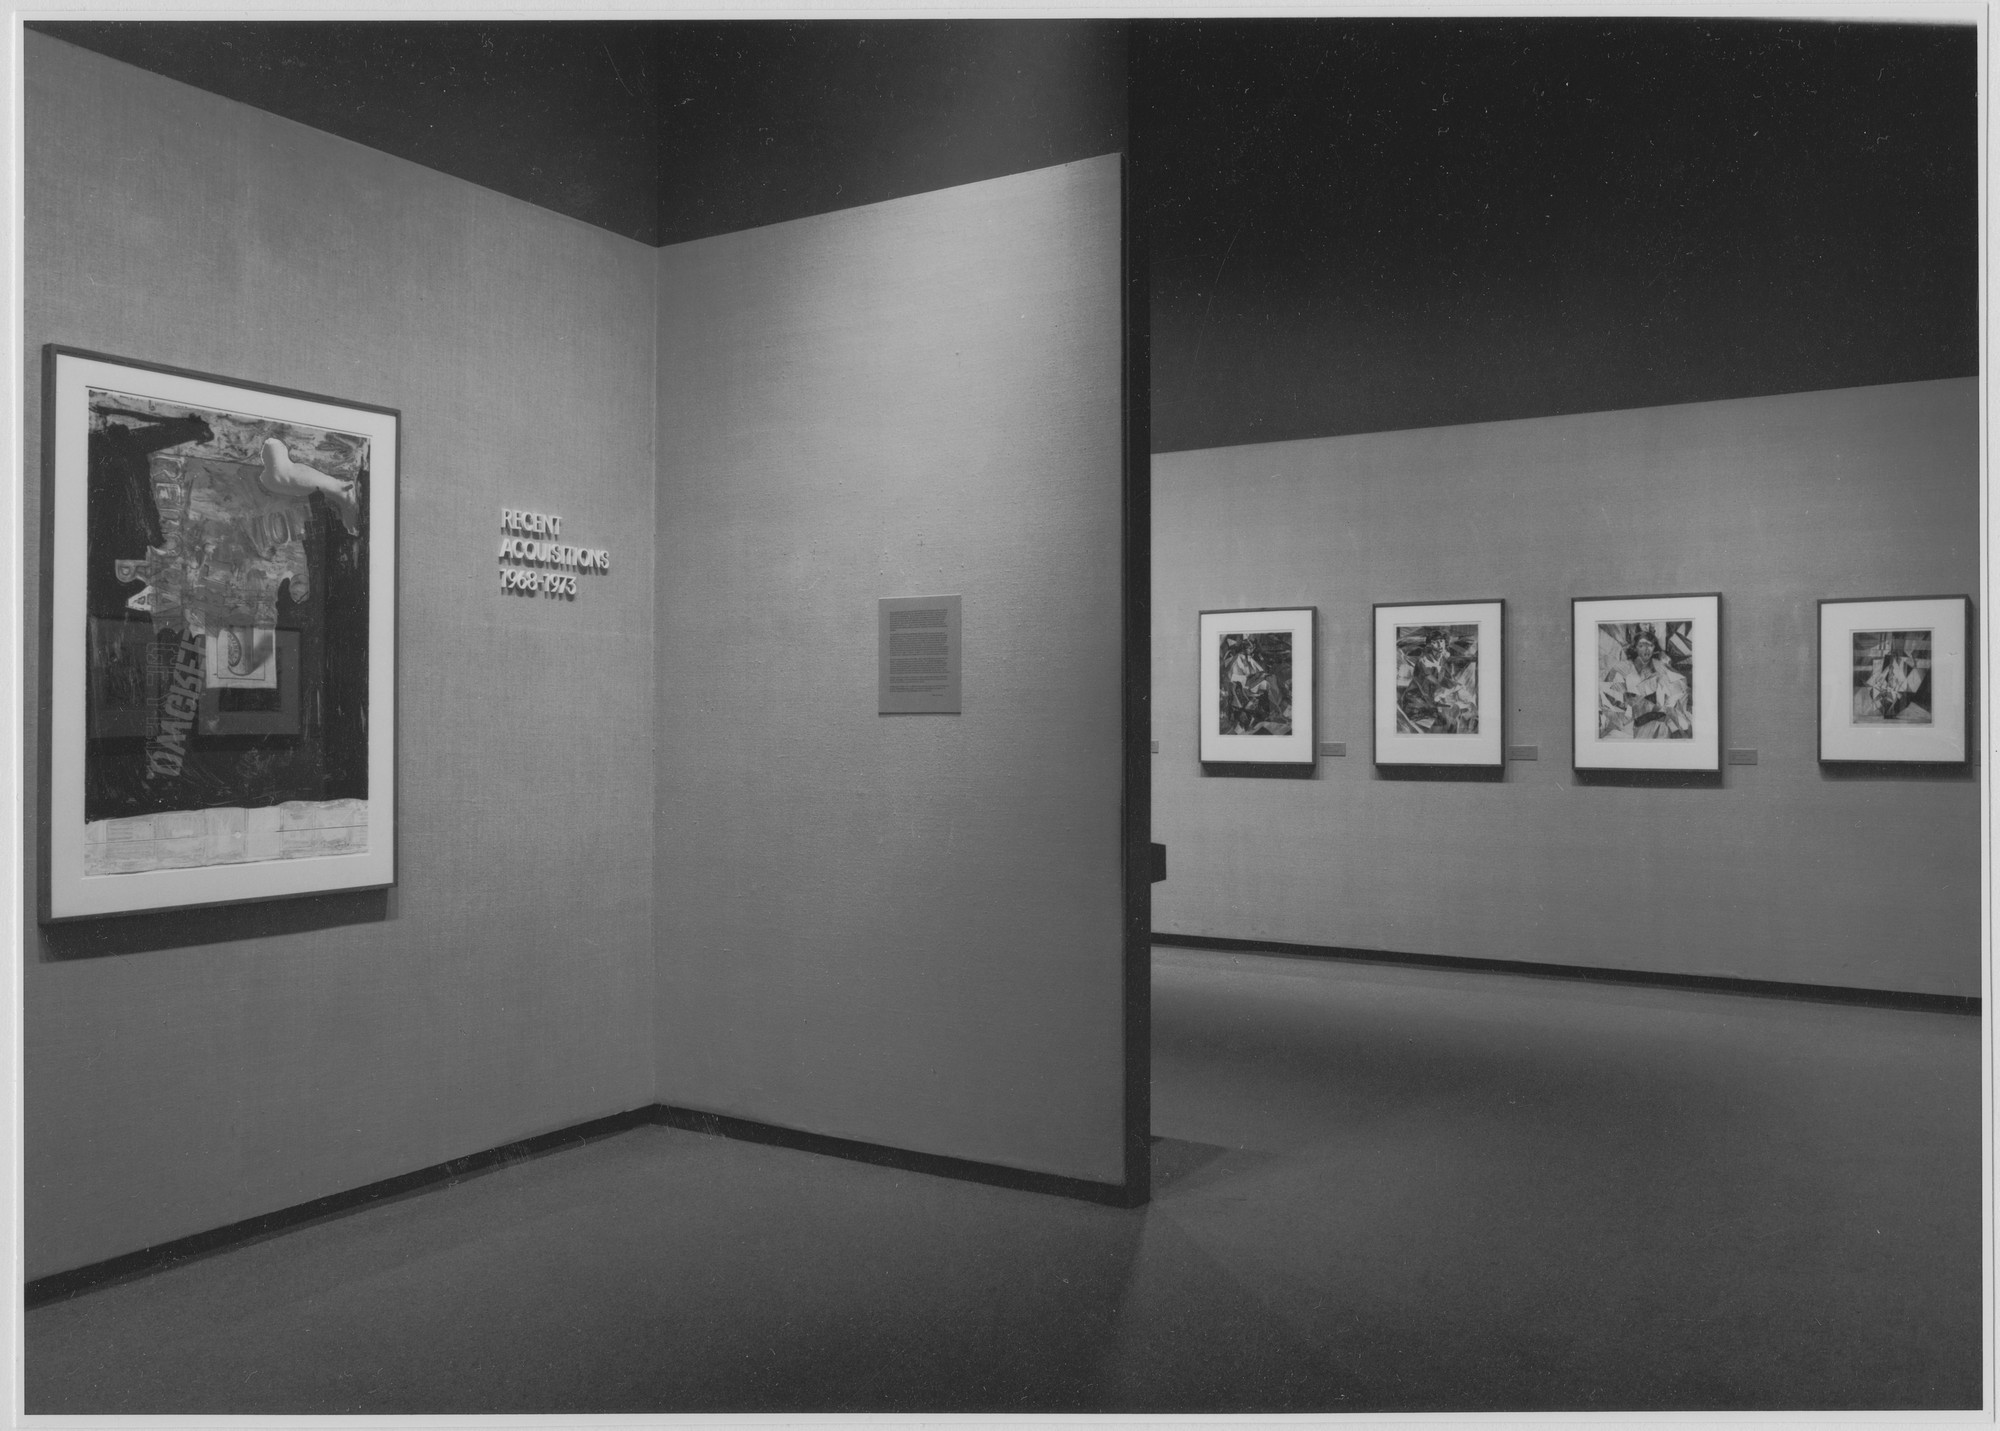 "Installation view of the exhibition, ""Recent Acquisitions 1968-1973."" June 15, 1973–September 25, 1973. Photographic Archive. The Museum of Modern Art Archives, New York. IN1038a.1. Photograph by Katherine Keller."